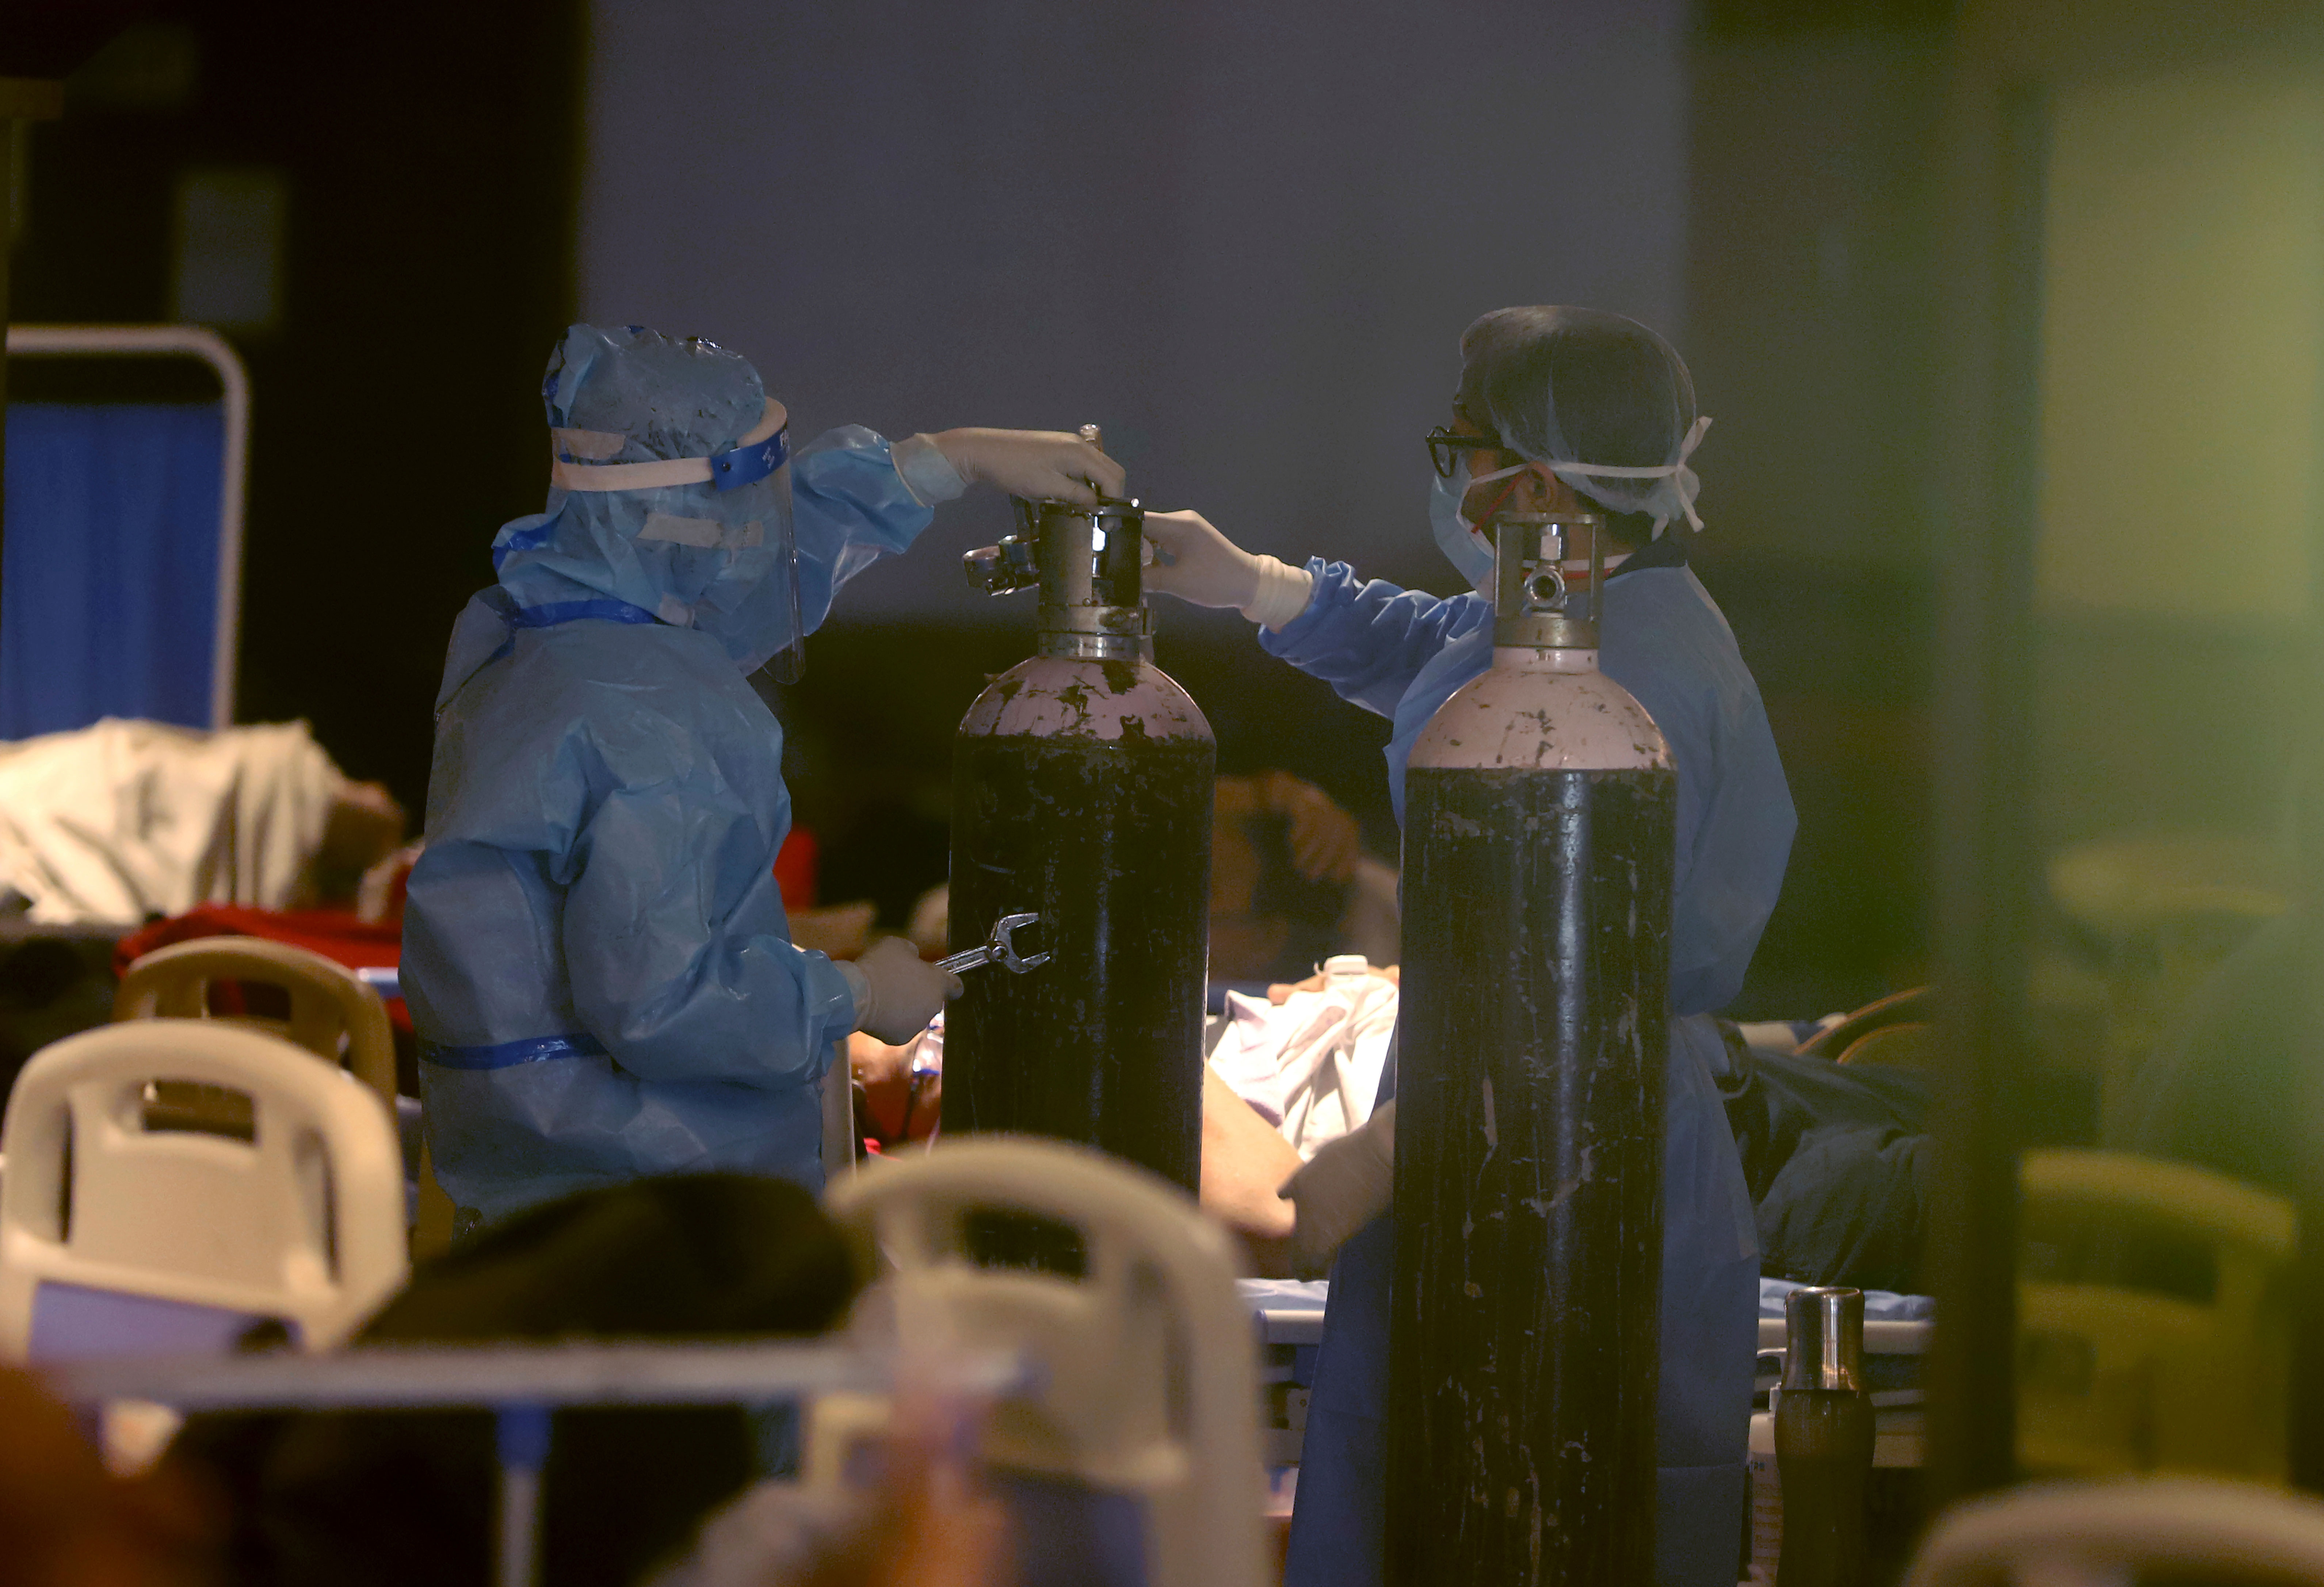 Health workers install oxygen cylinders for Covid-19 patients at a makeshift hospital in New Delhi on April 30.